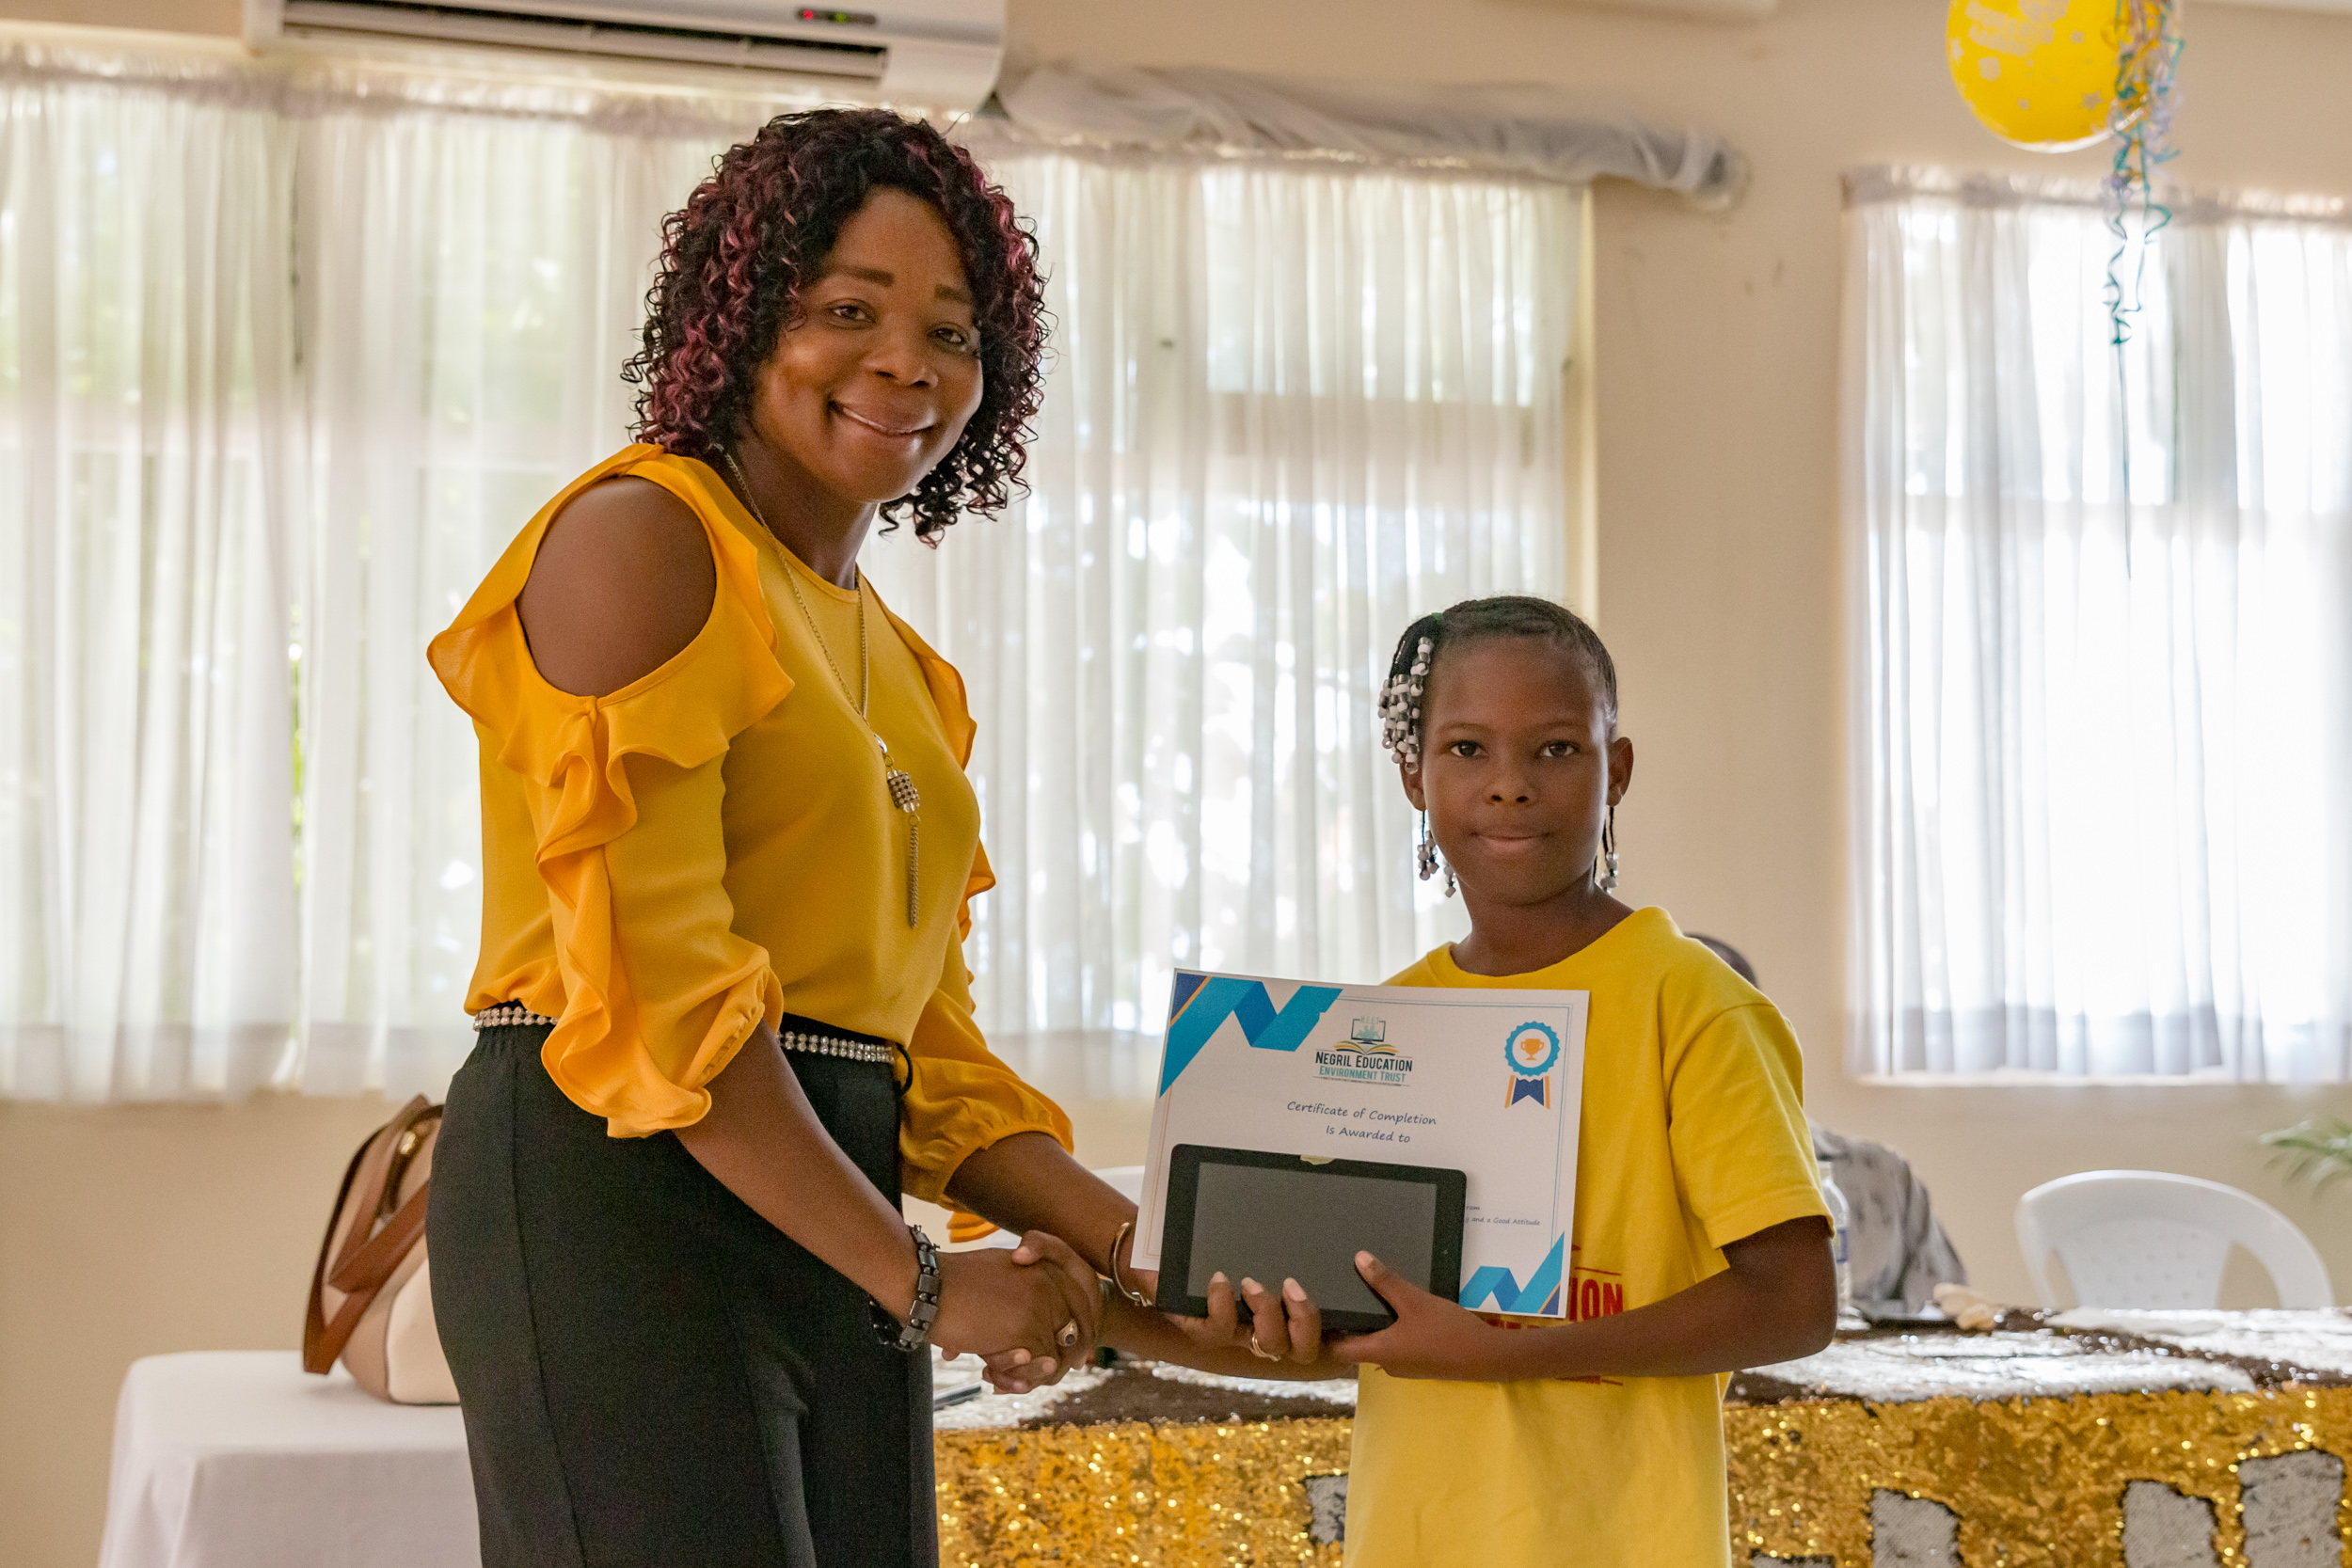 Student receives plaque and tablet